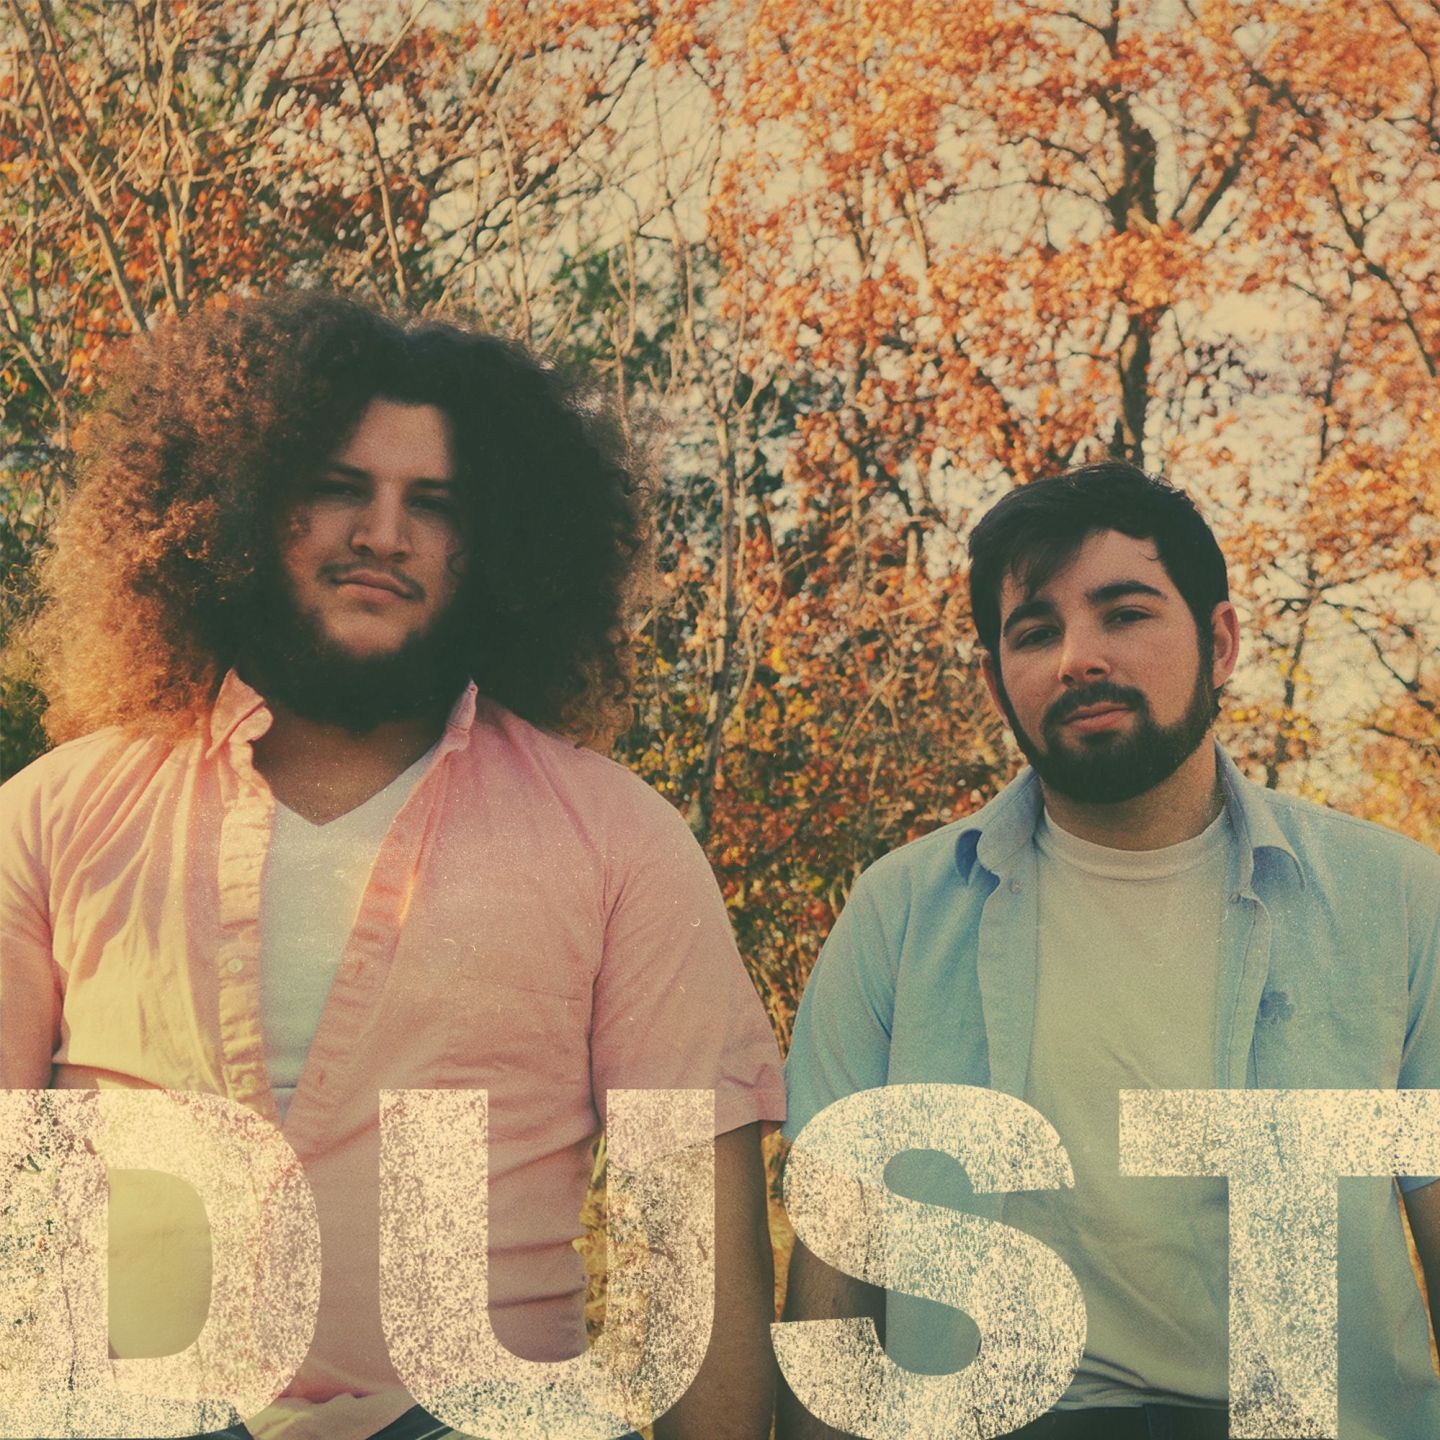 FRESH: 'Dust' - Late Night Thoughts